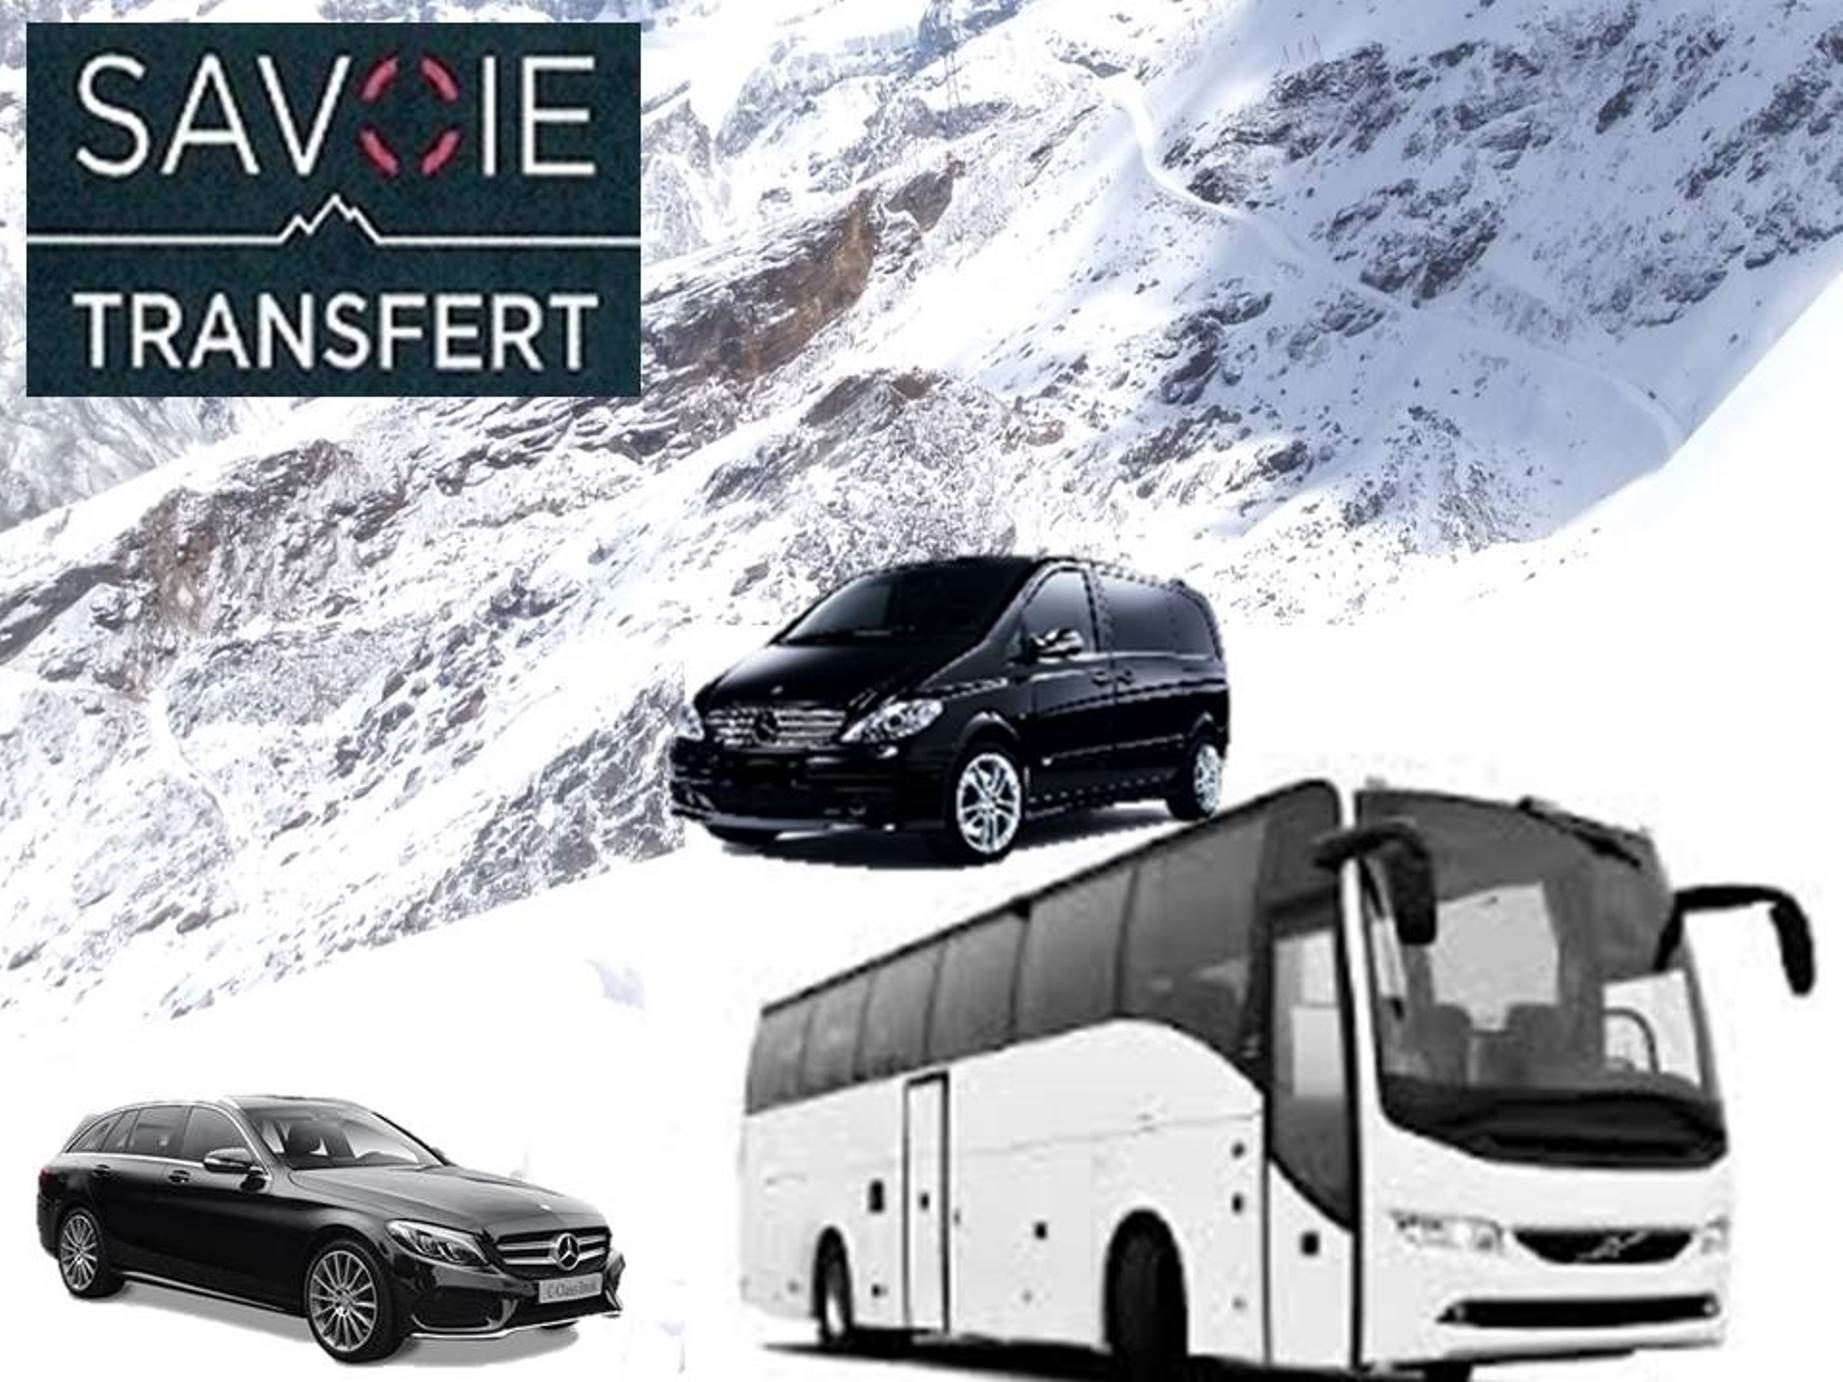 PRIVATE TRANSFER from LYON STATIONS ROUND TRIP with VAL THORENS TRANSFERT